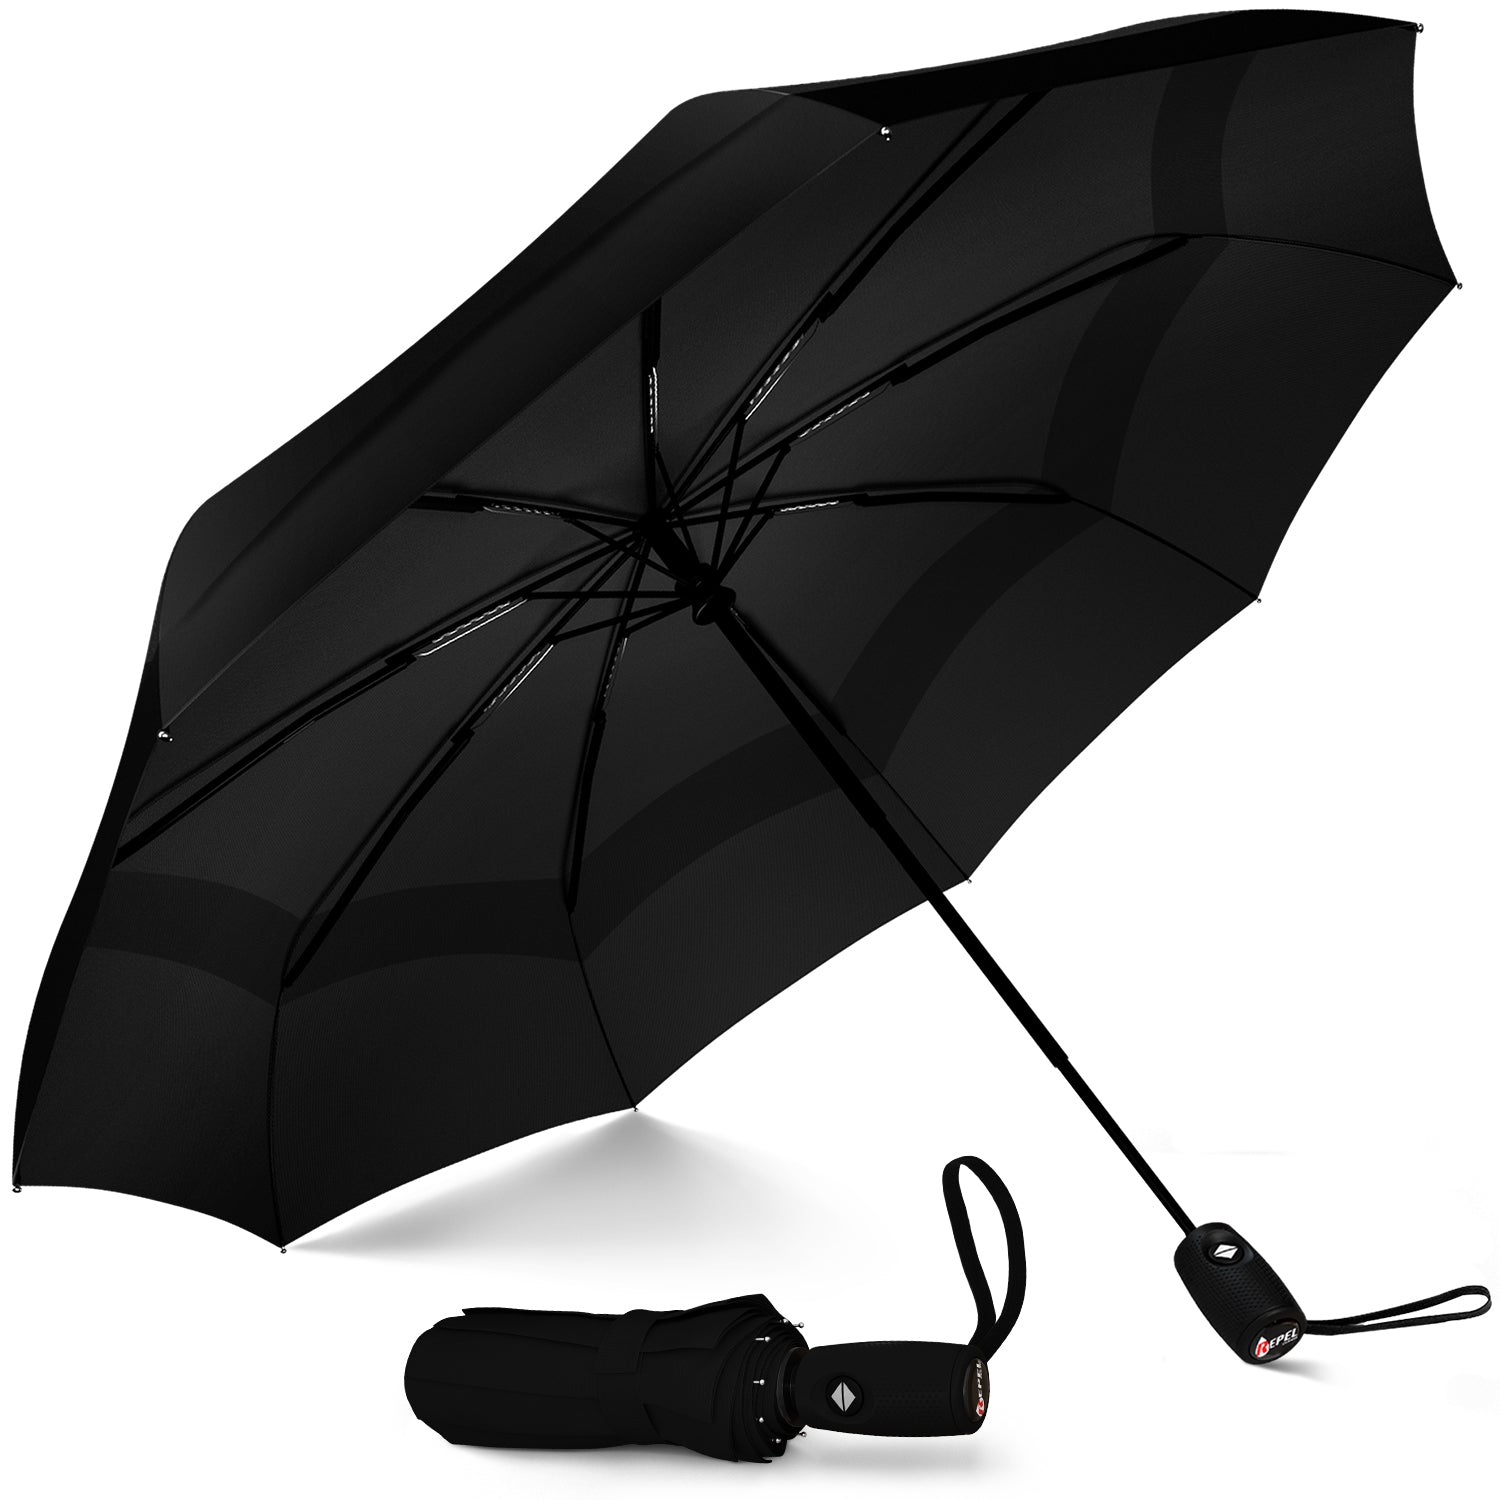 Travel Umbrella - Black